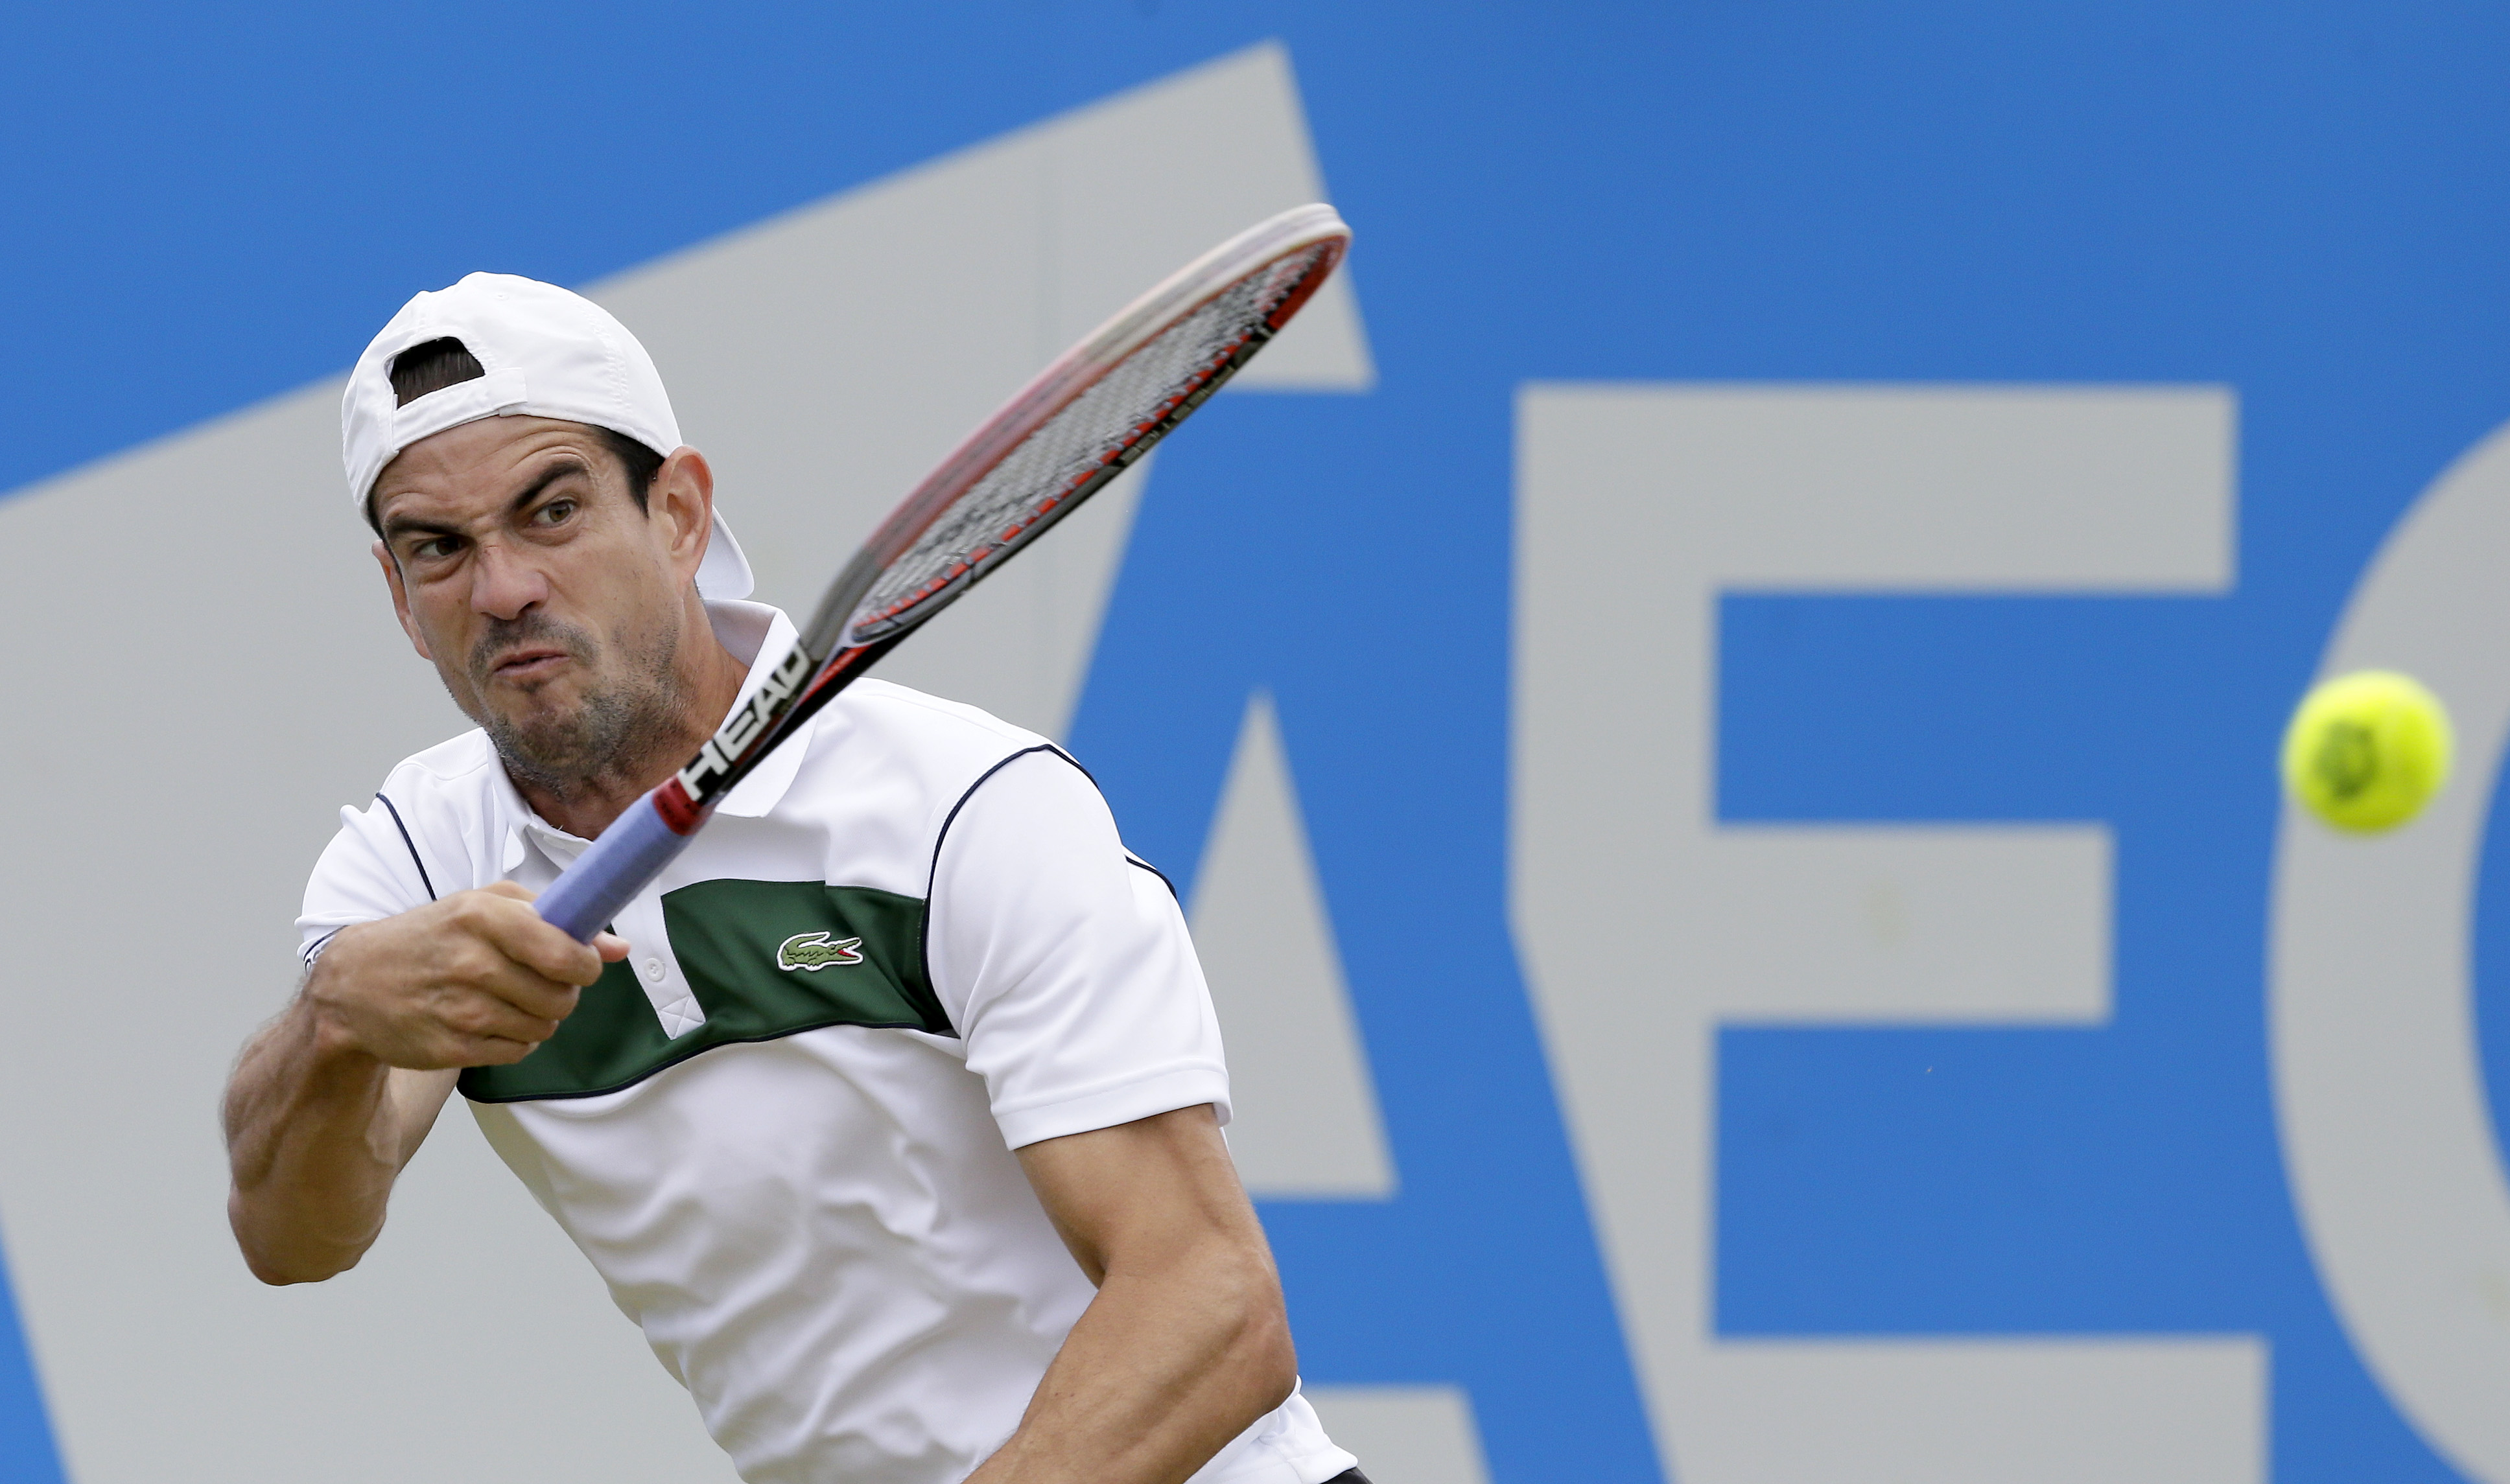 Spain's Guillermo Garcia-Lopez plays a return to South Africa's Kevin Anderson during their quarterfinal tennis match on the fifth day of the Queen's Championships in London, Friday, June 19, 2015. (AP Photo/Tim Ireland)